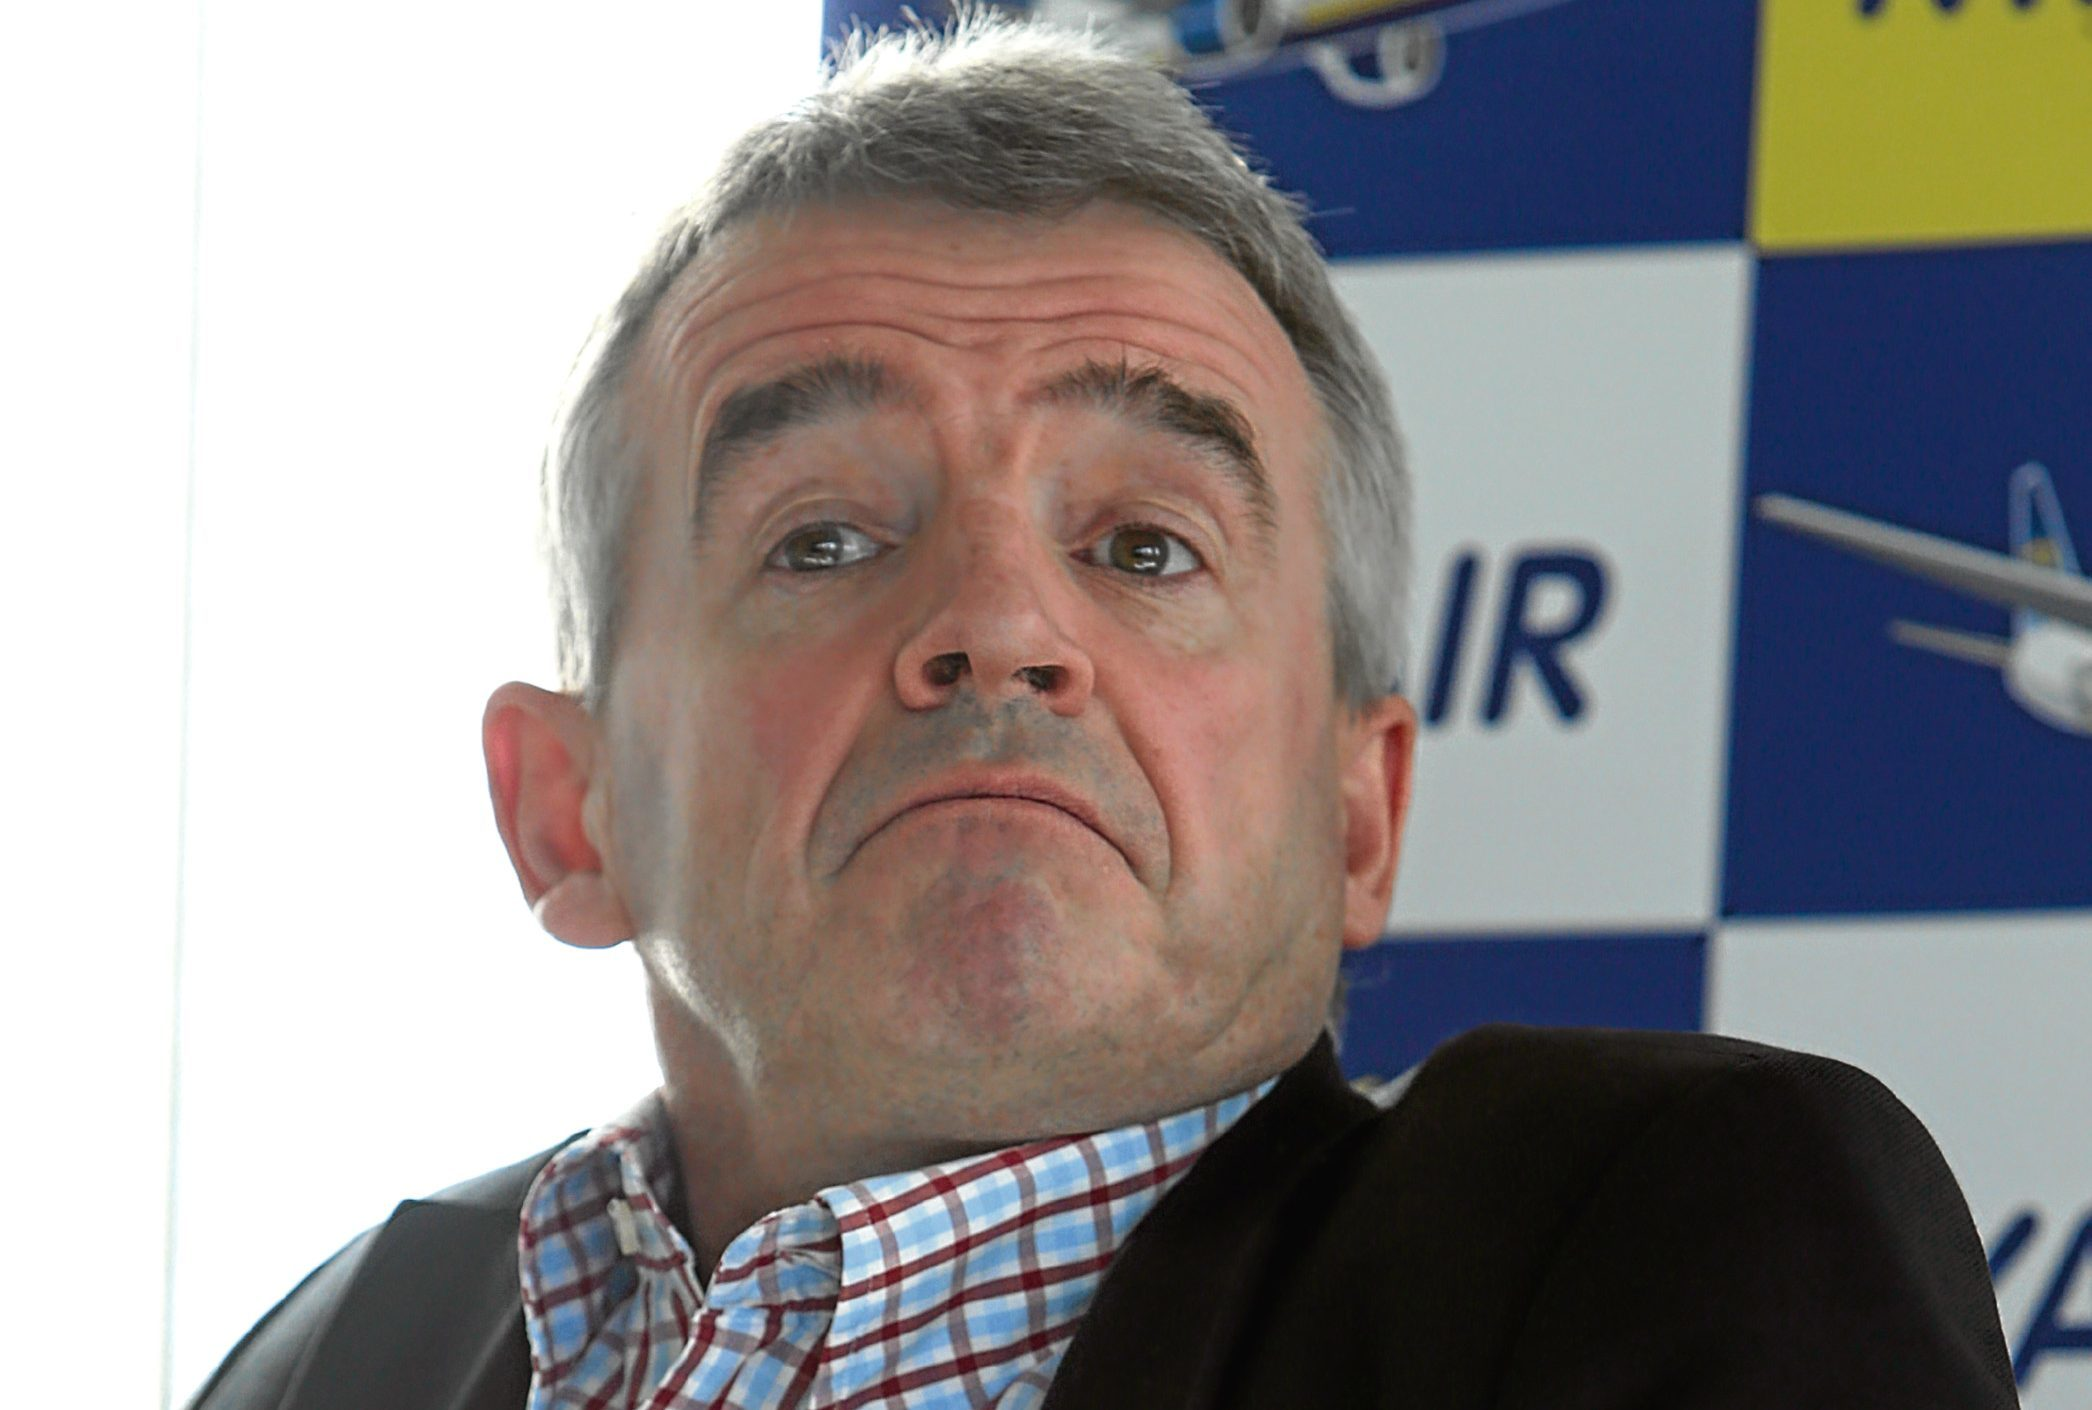 Ryanair's CEO Michael O'Leary speaks at a press conference in Central London after the low cost airline announces half year results.